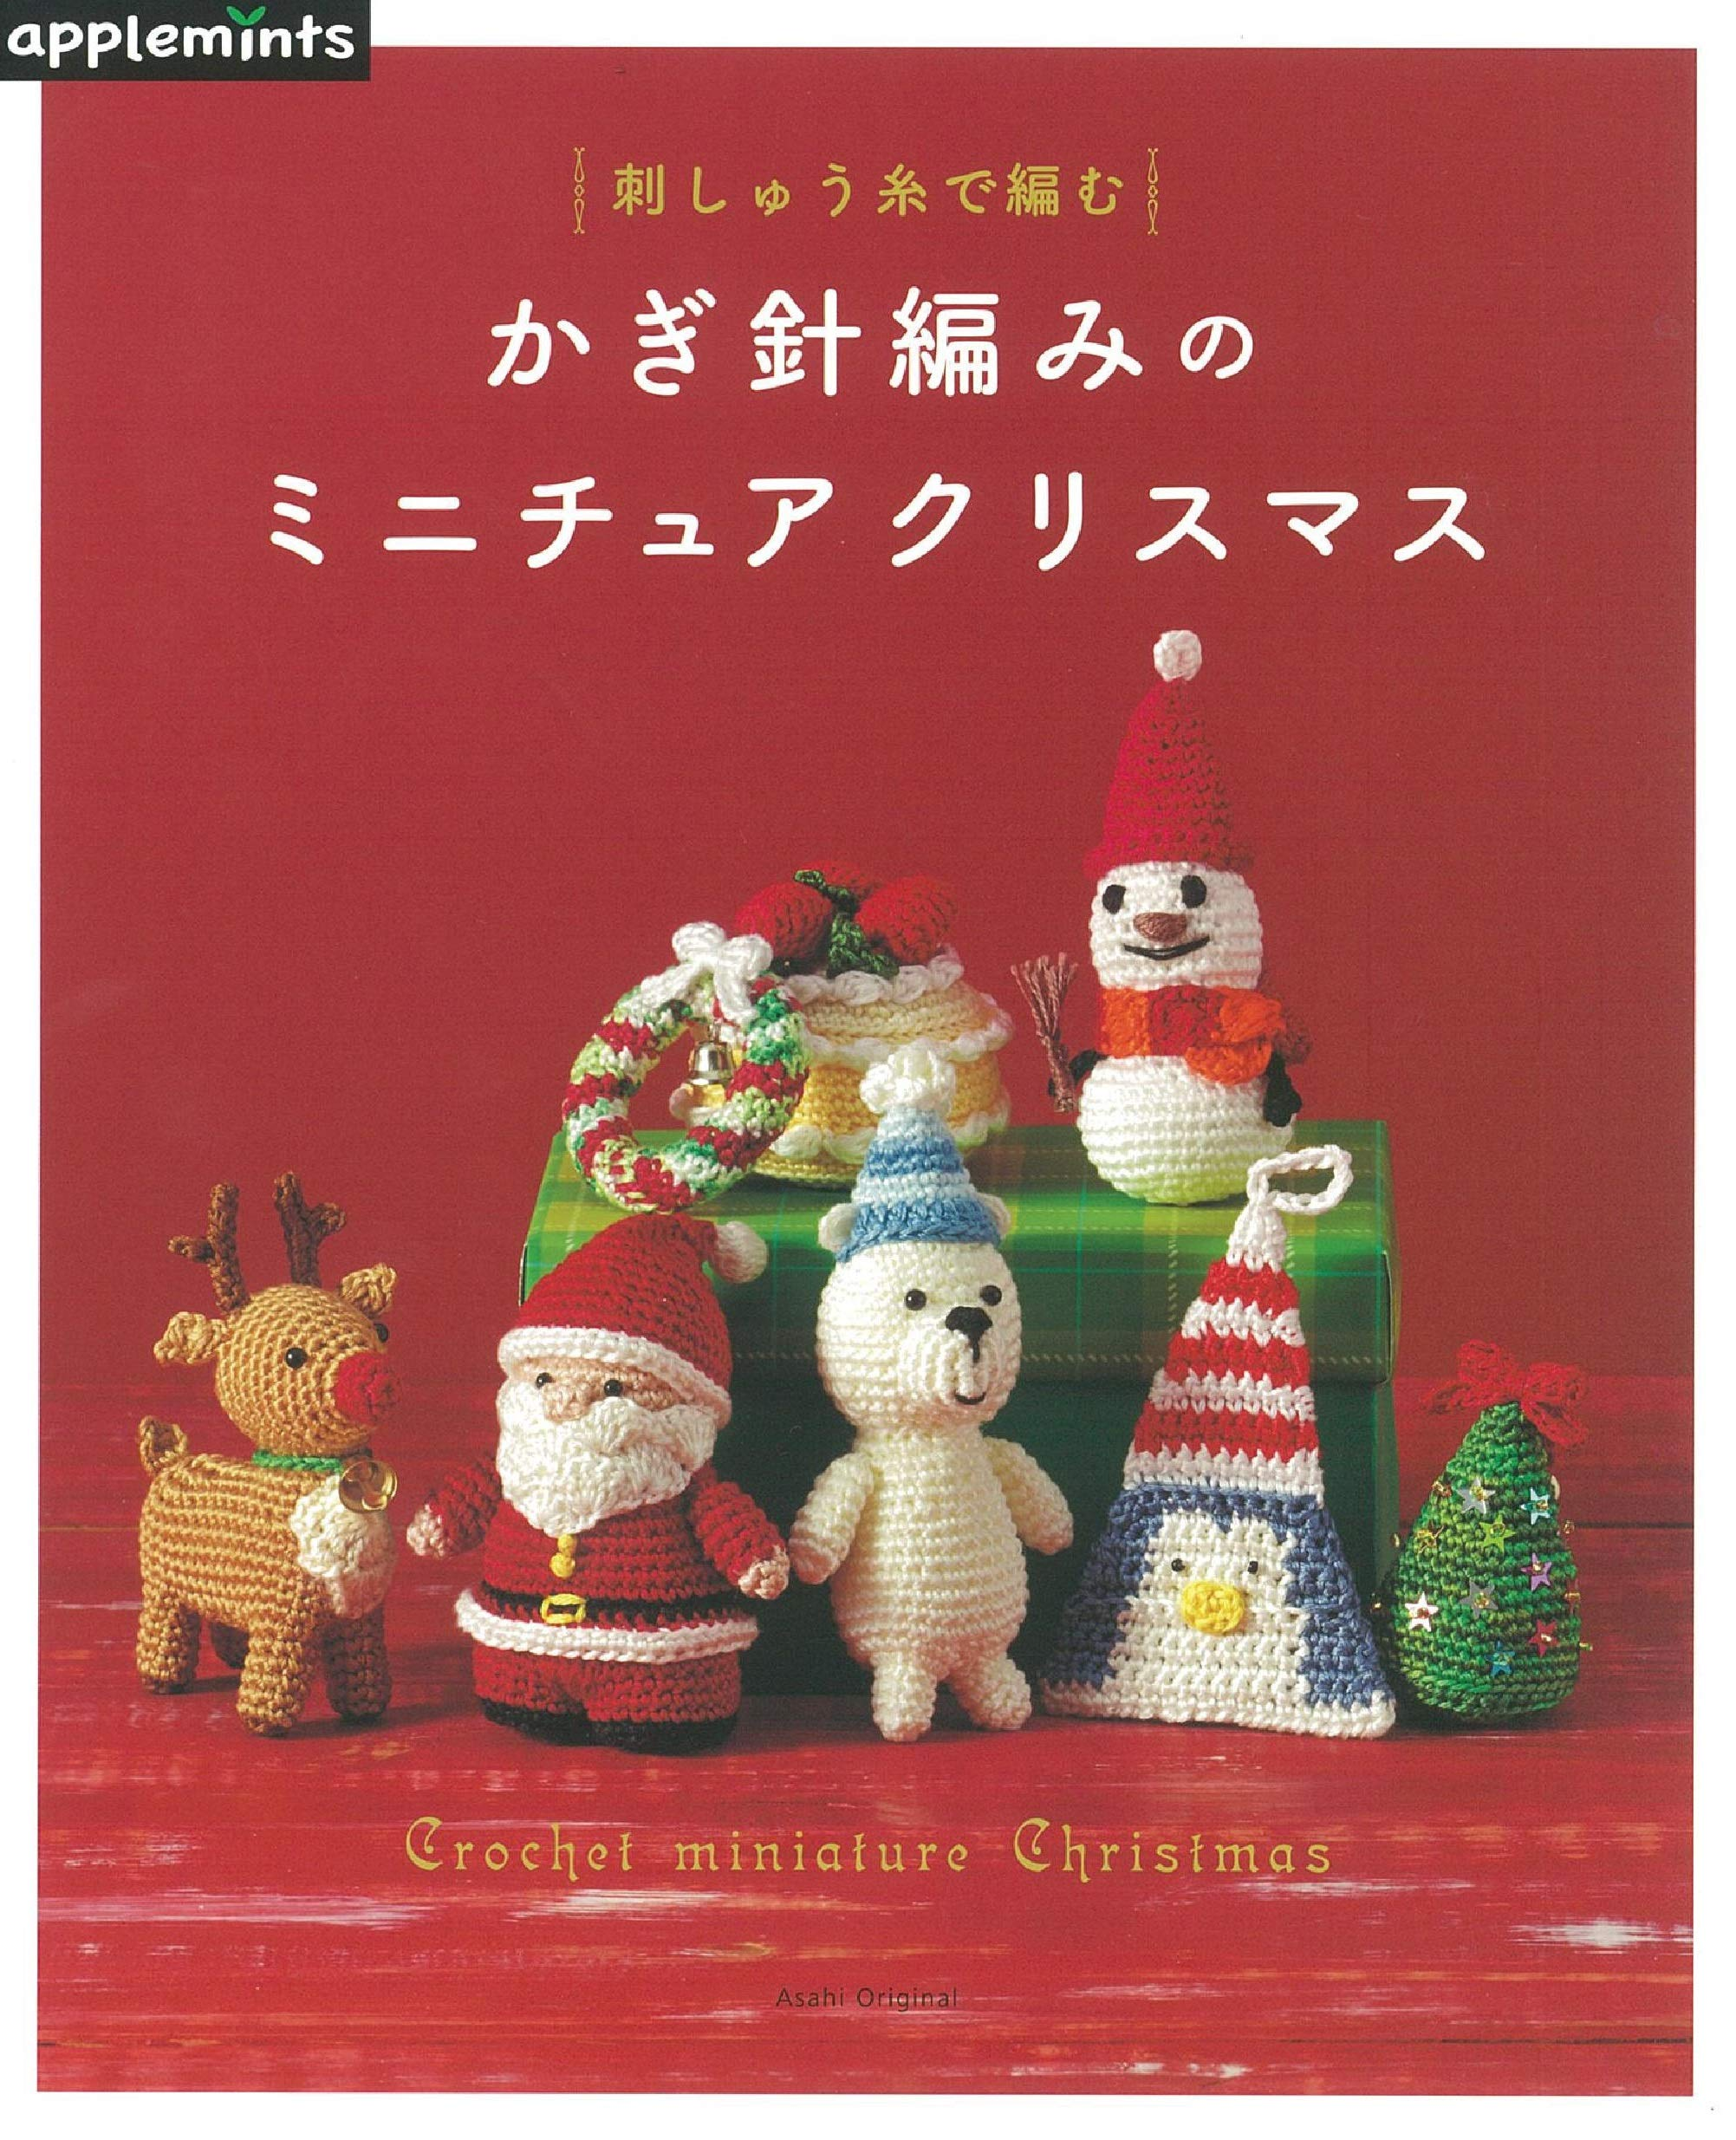 Knitting with embroidery thread Crochet miniature Christmas